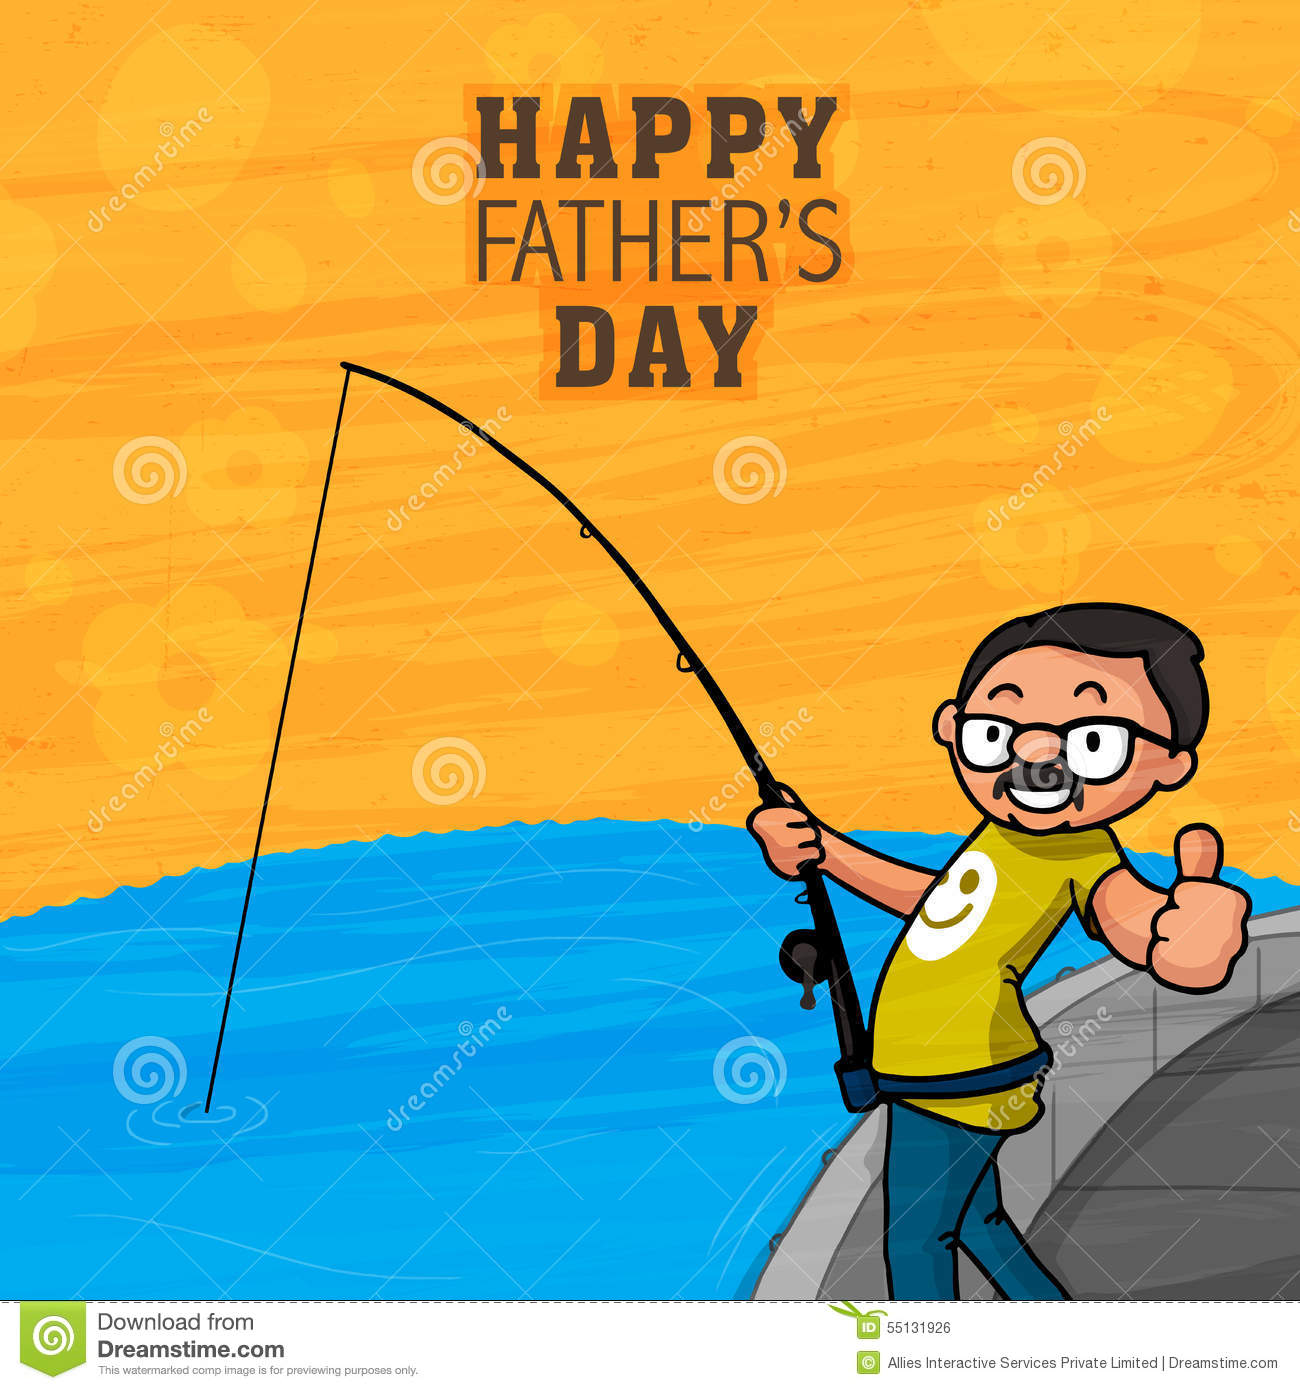 Greeting card for happy fathers day celebration stock illustration greeting card for happy fathers day celebration kristyandbryce Choice Image